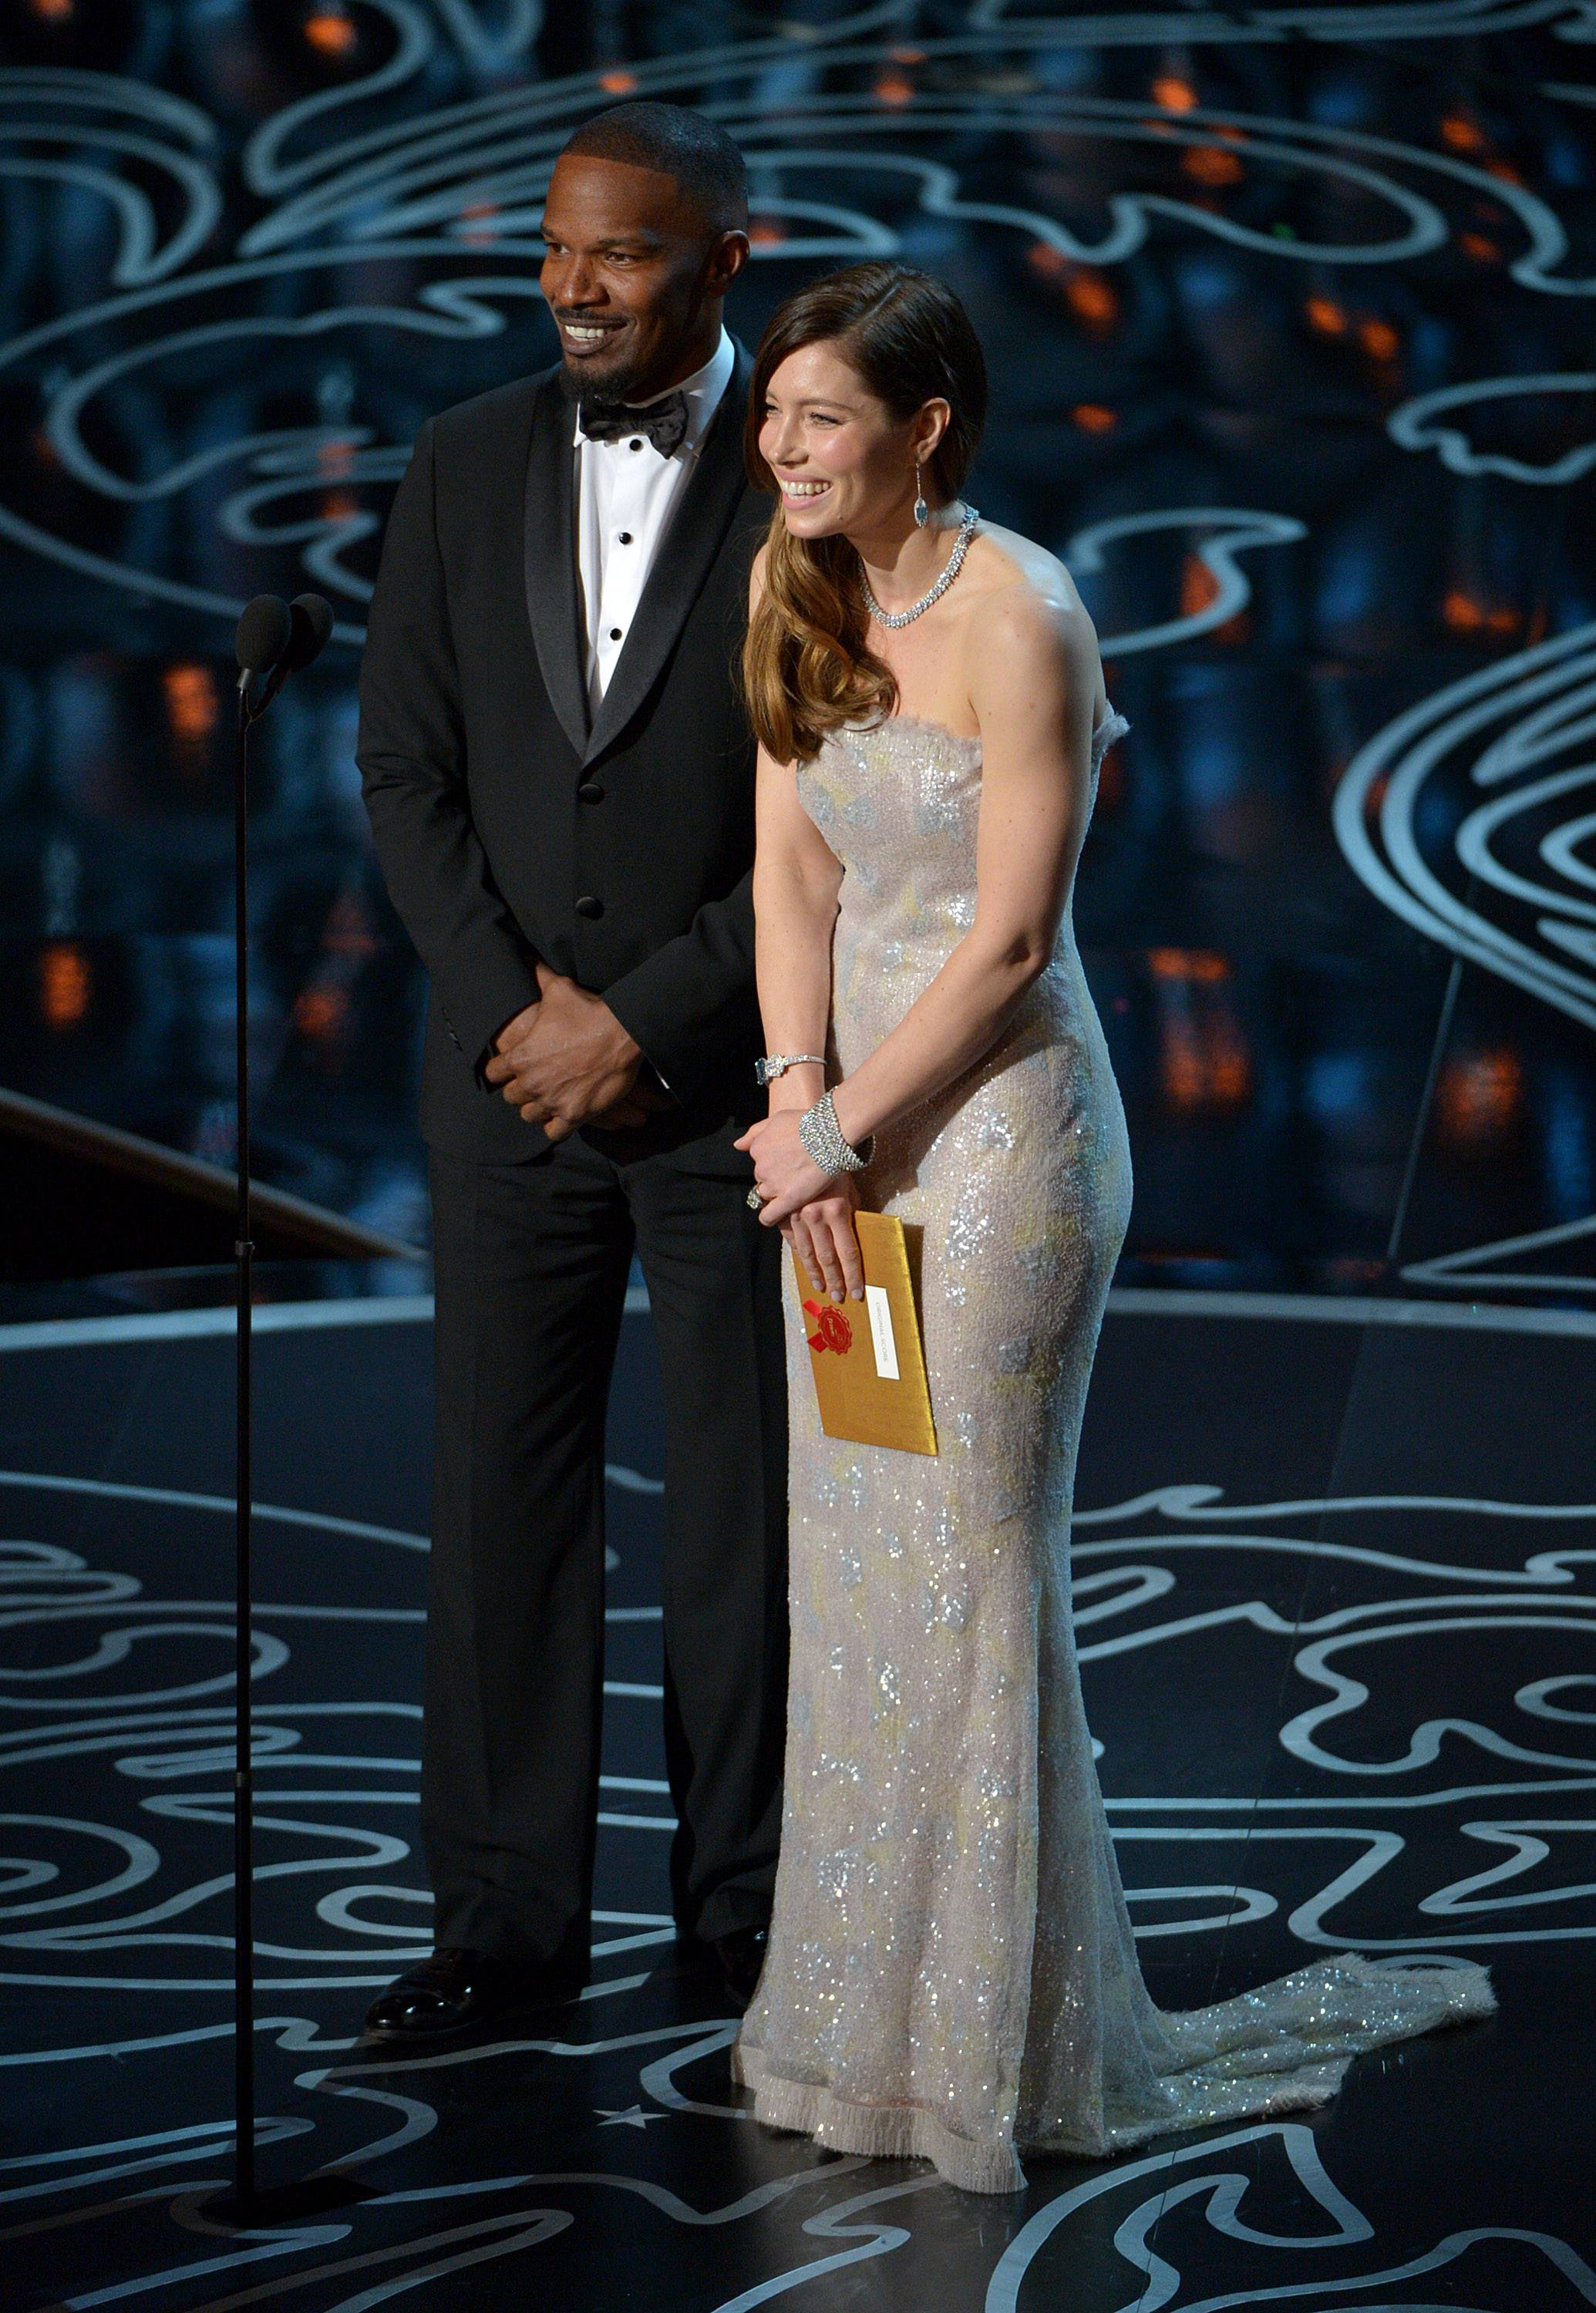 Jamie Foxx, left, and Jessica Biel speak during the Oscars at the Dolby Theatre on Sunday.